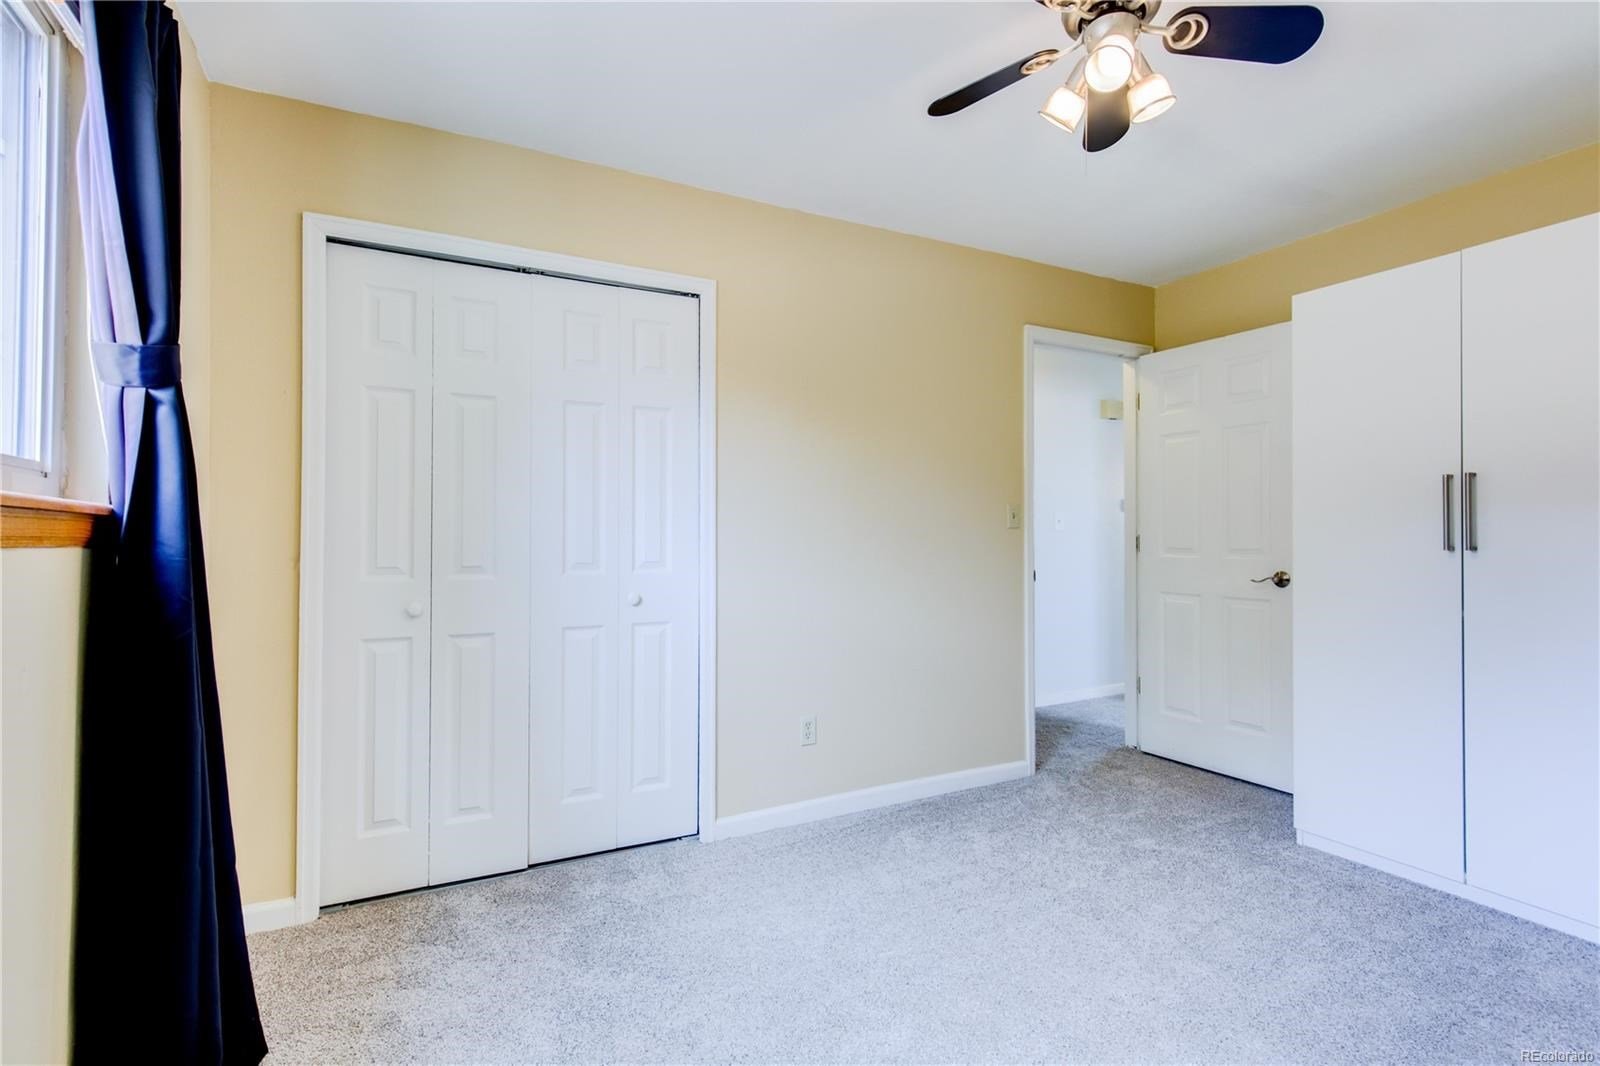 MLS# 5137325 - 13 - 6156 W 75th Place, Arvada, CO 80003